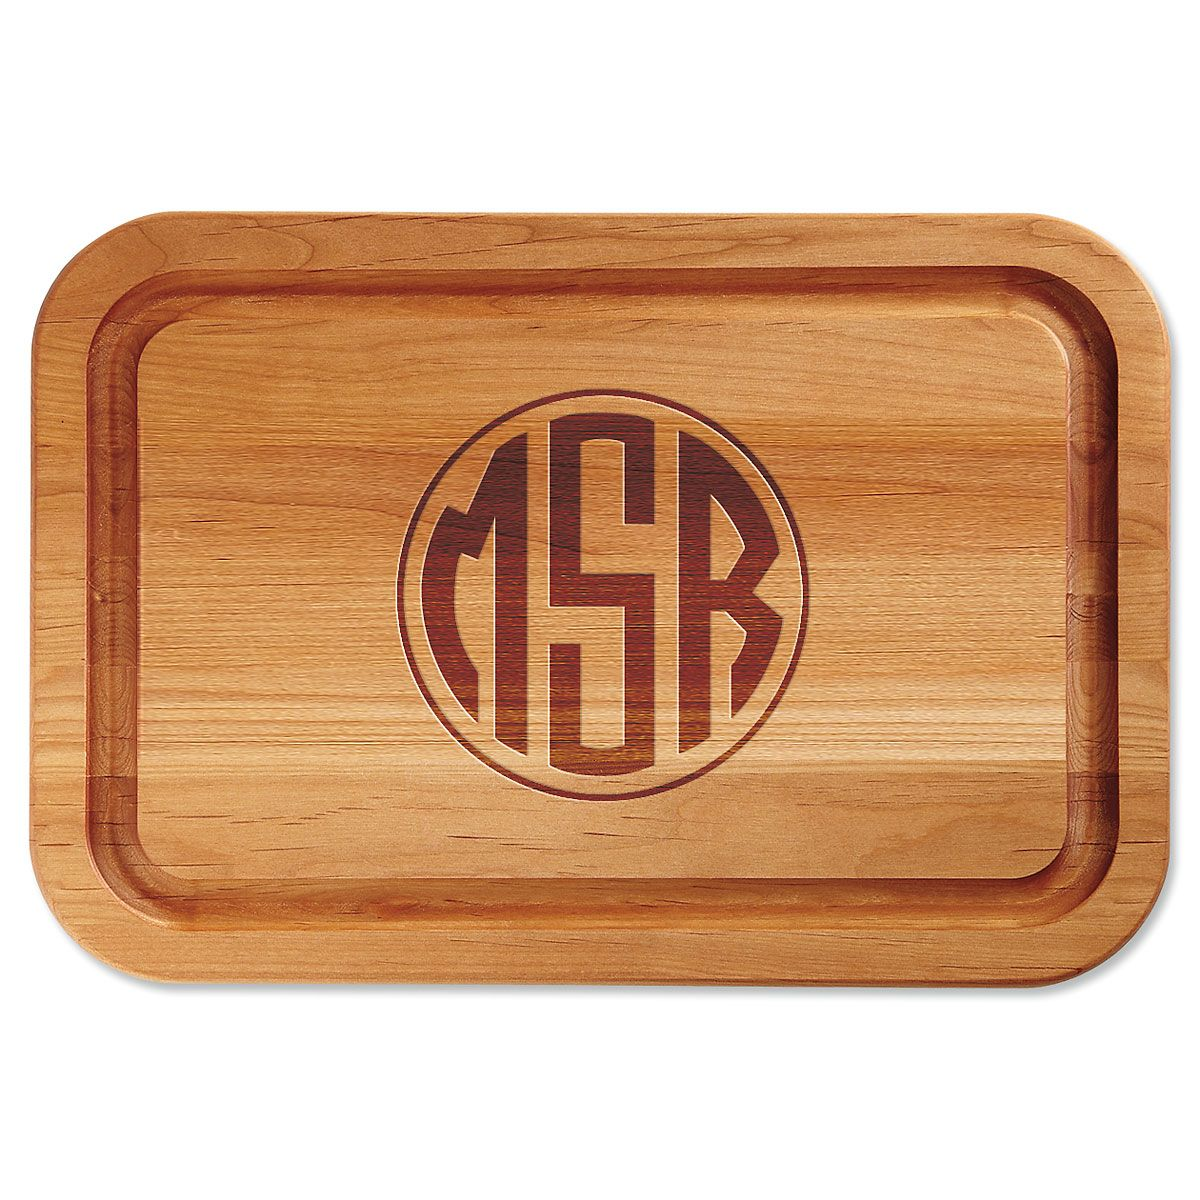 Monogram Personalized Wood Cutting Board